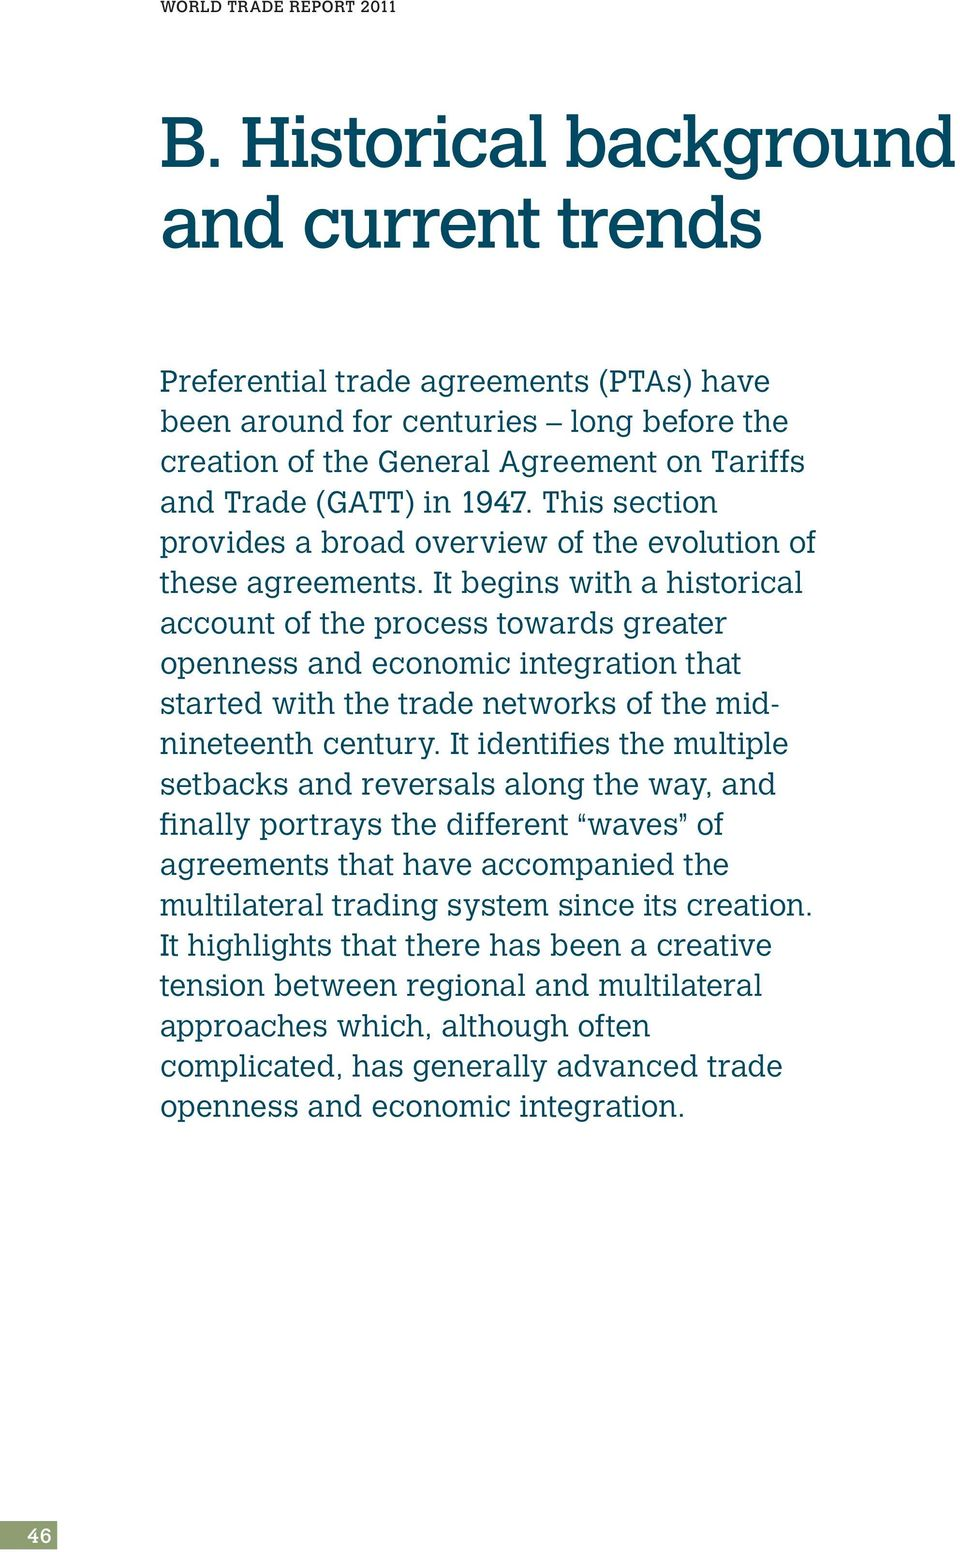 This section provides a broad overview of the evolution of these agreements.